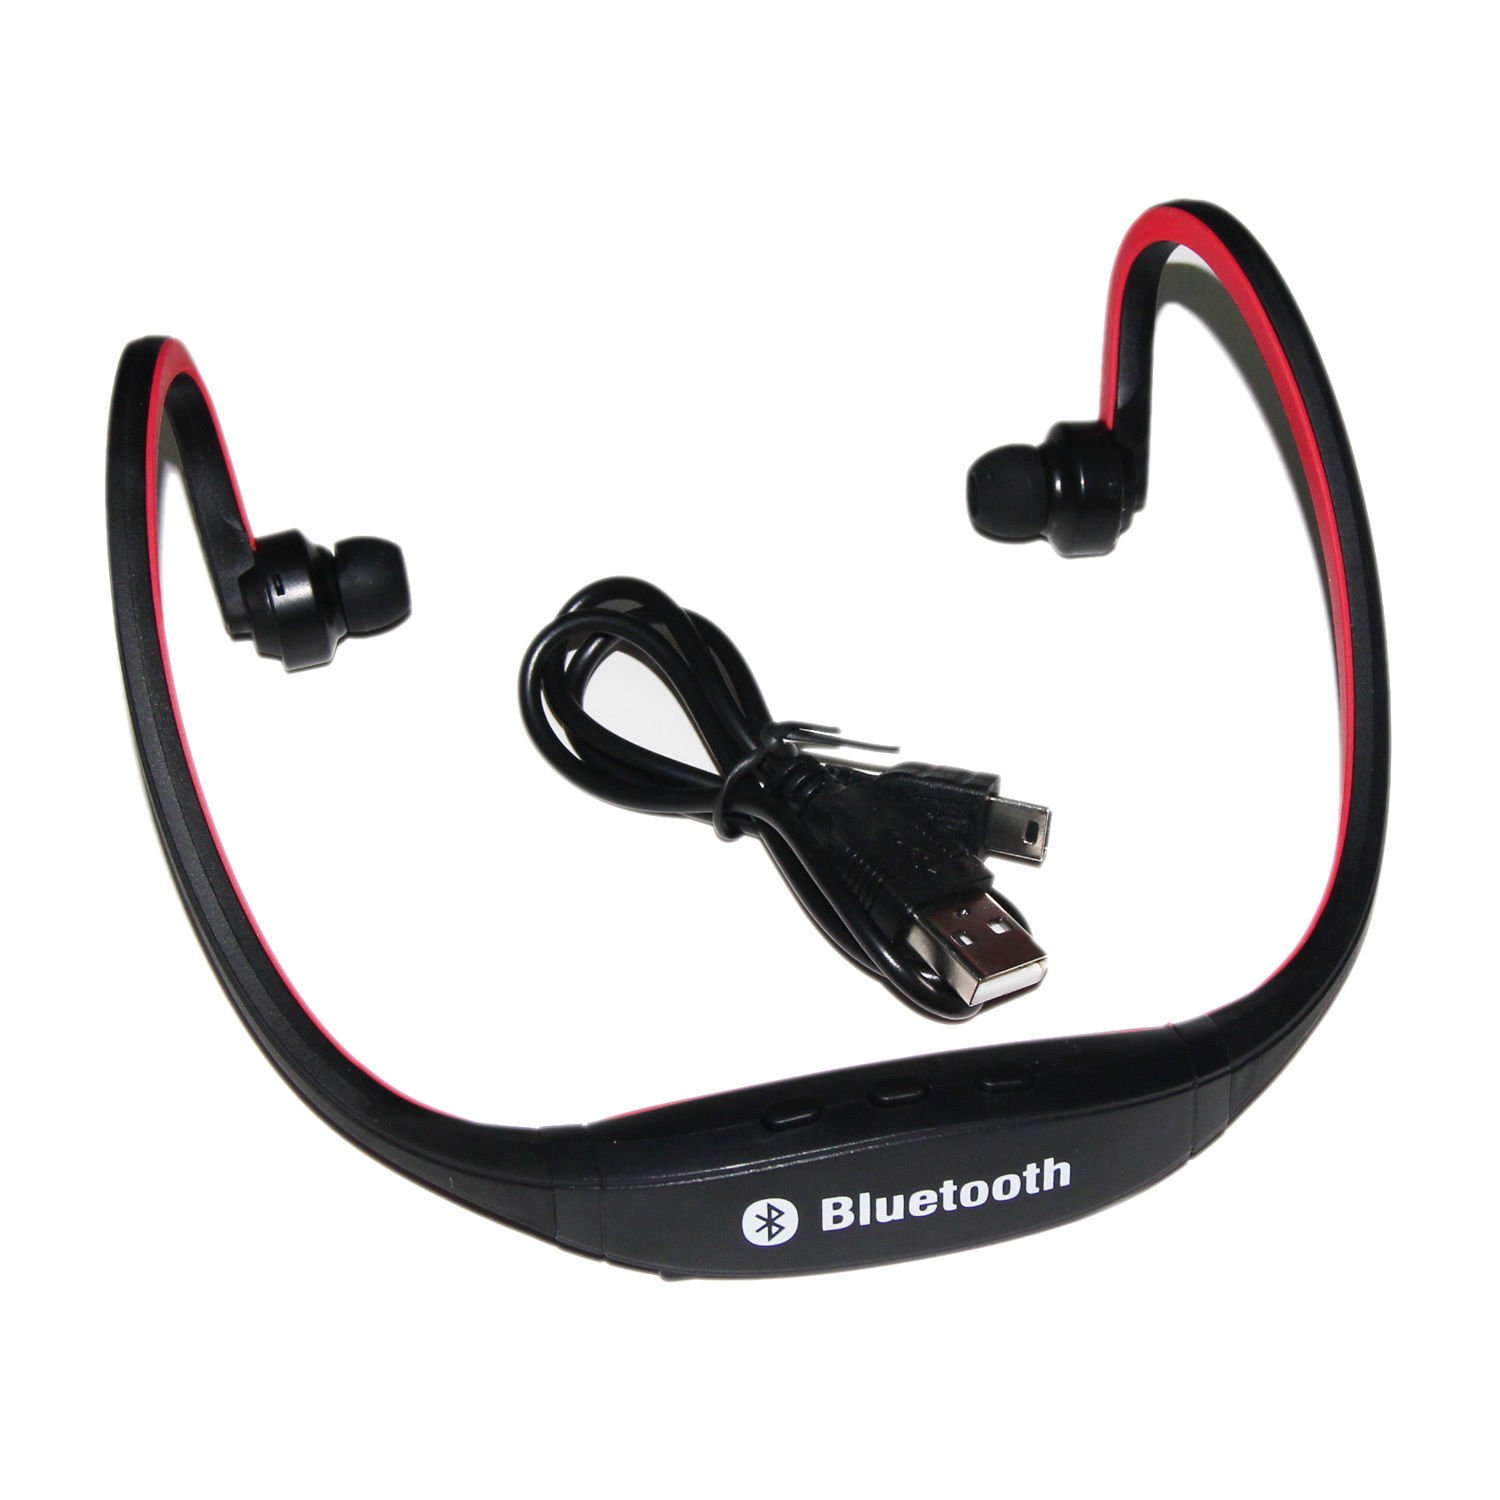 SS Wireless Bluetooth Headset FOR Cell Phone Iphone Laptop RED Black